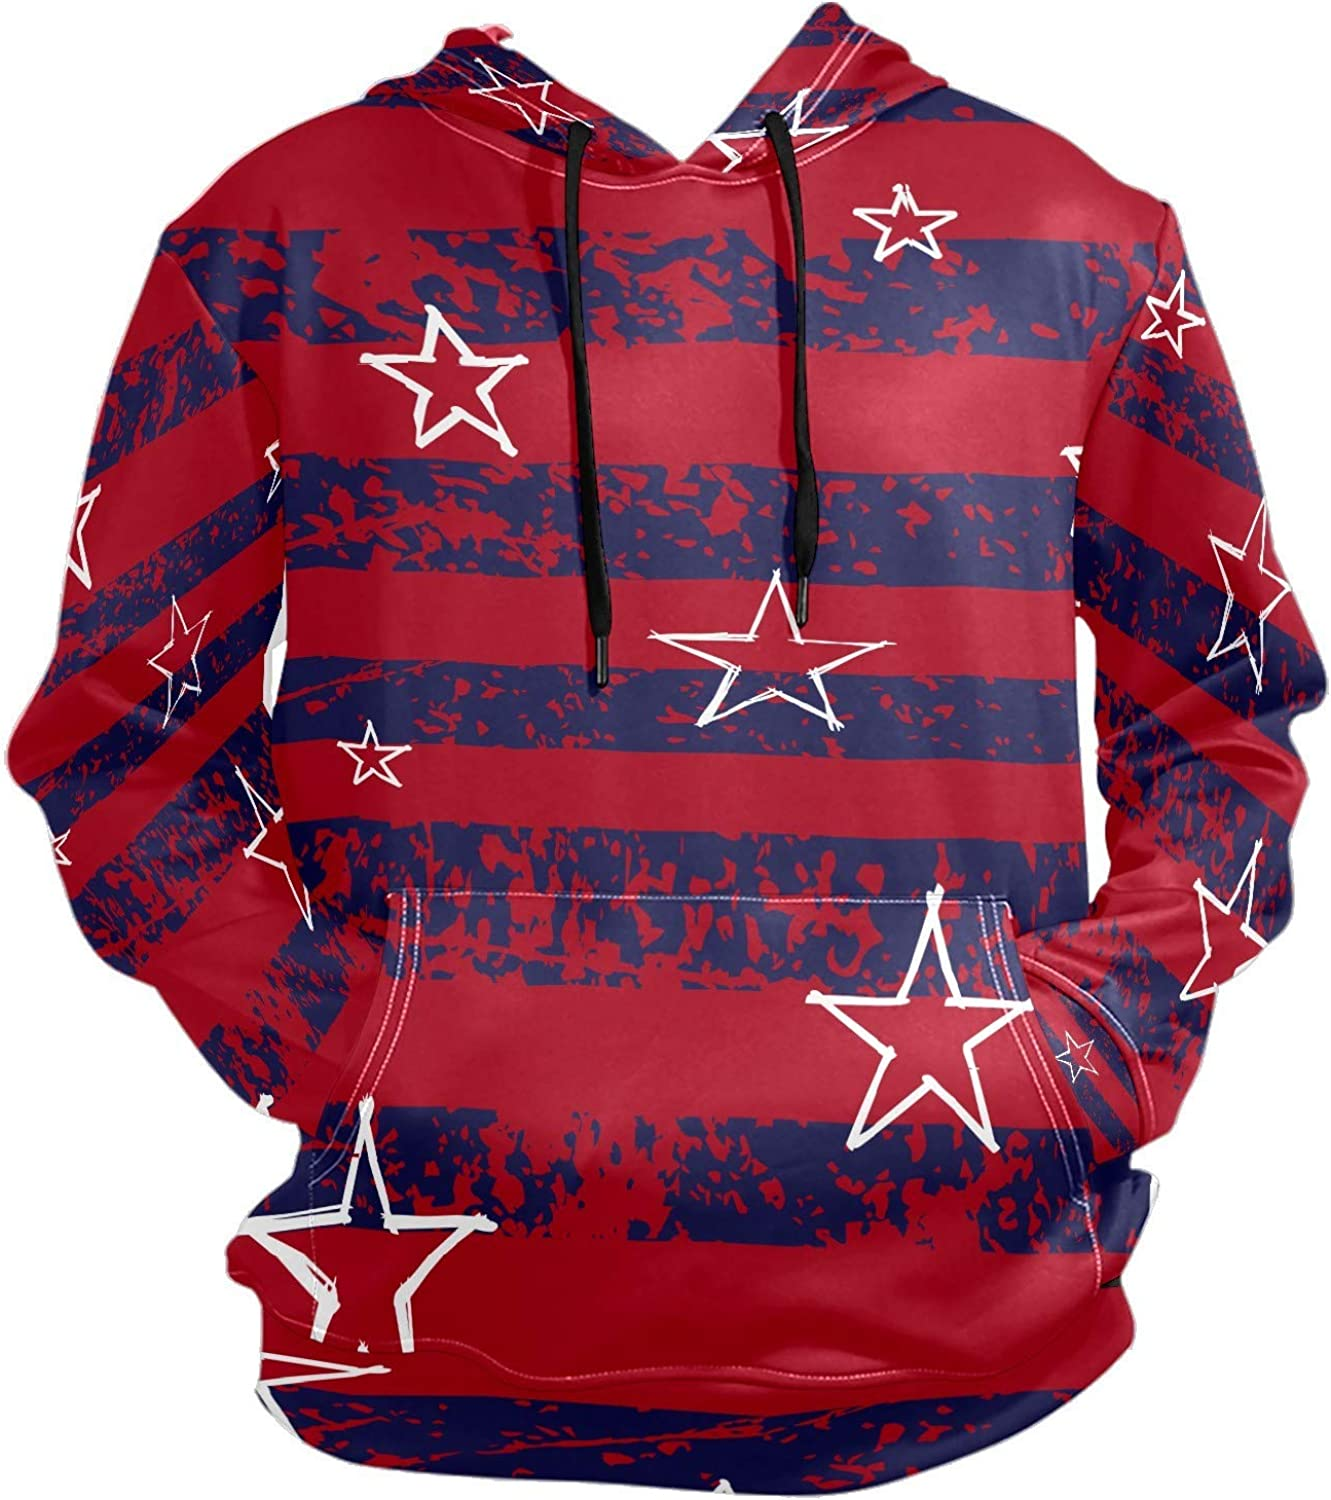 Men's Sport Hoodie White Star Blue Red Striped Big and Tall Hoodies for Men Women Oversized Hooded Sweatshirt Hip Hop Pullover Hoodie Midweight Hood for Boys Girls